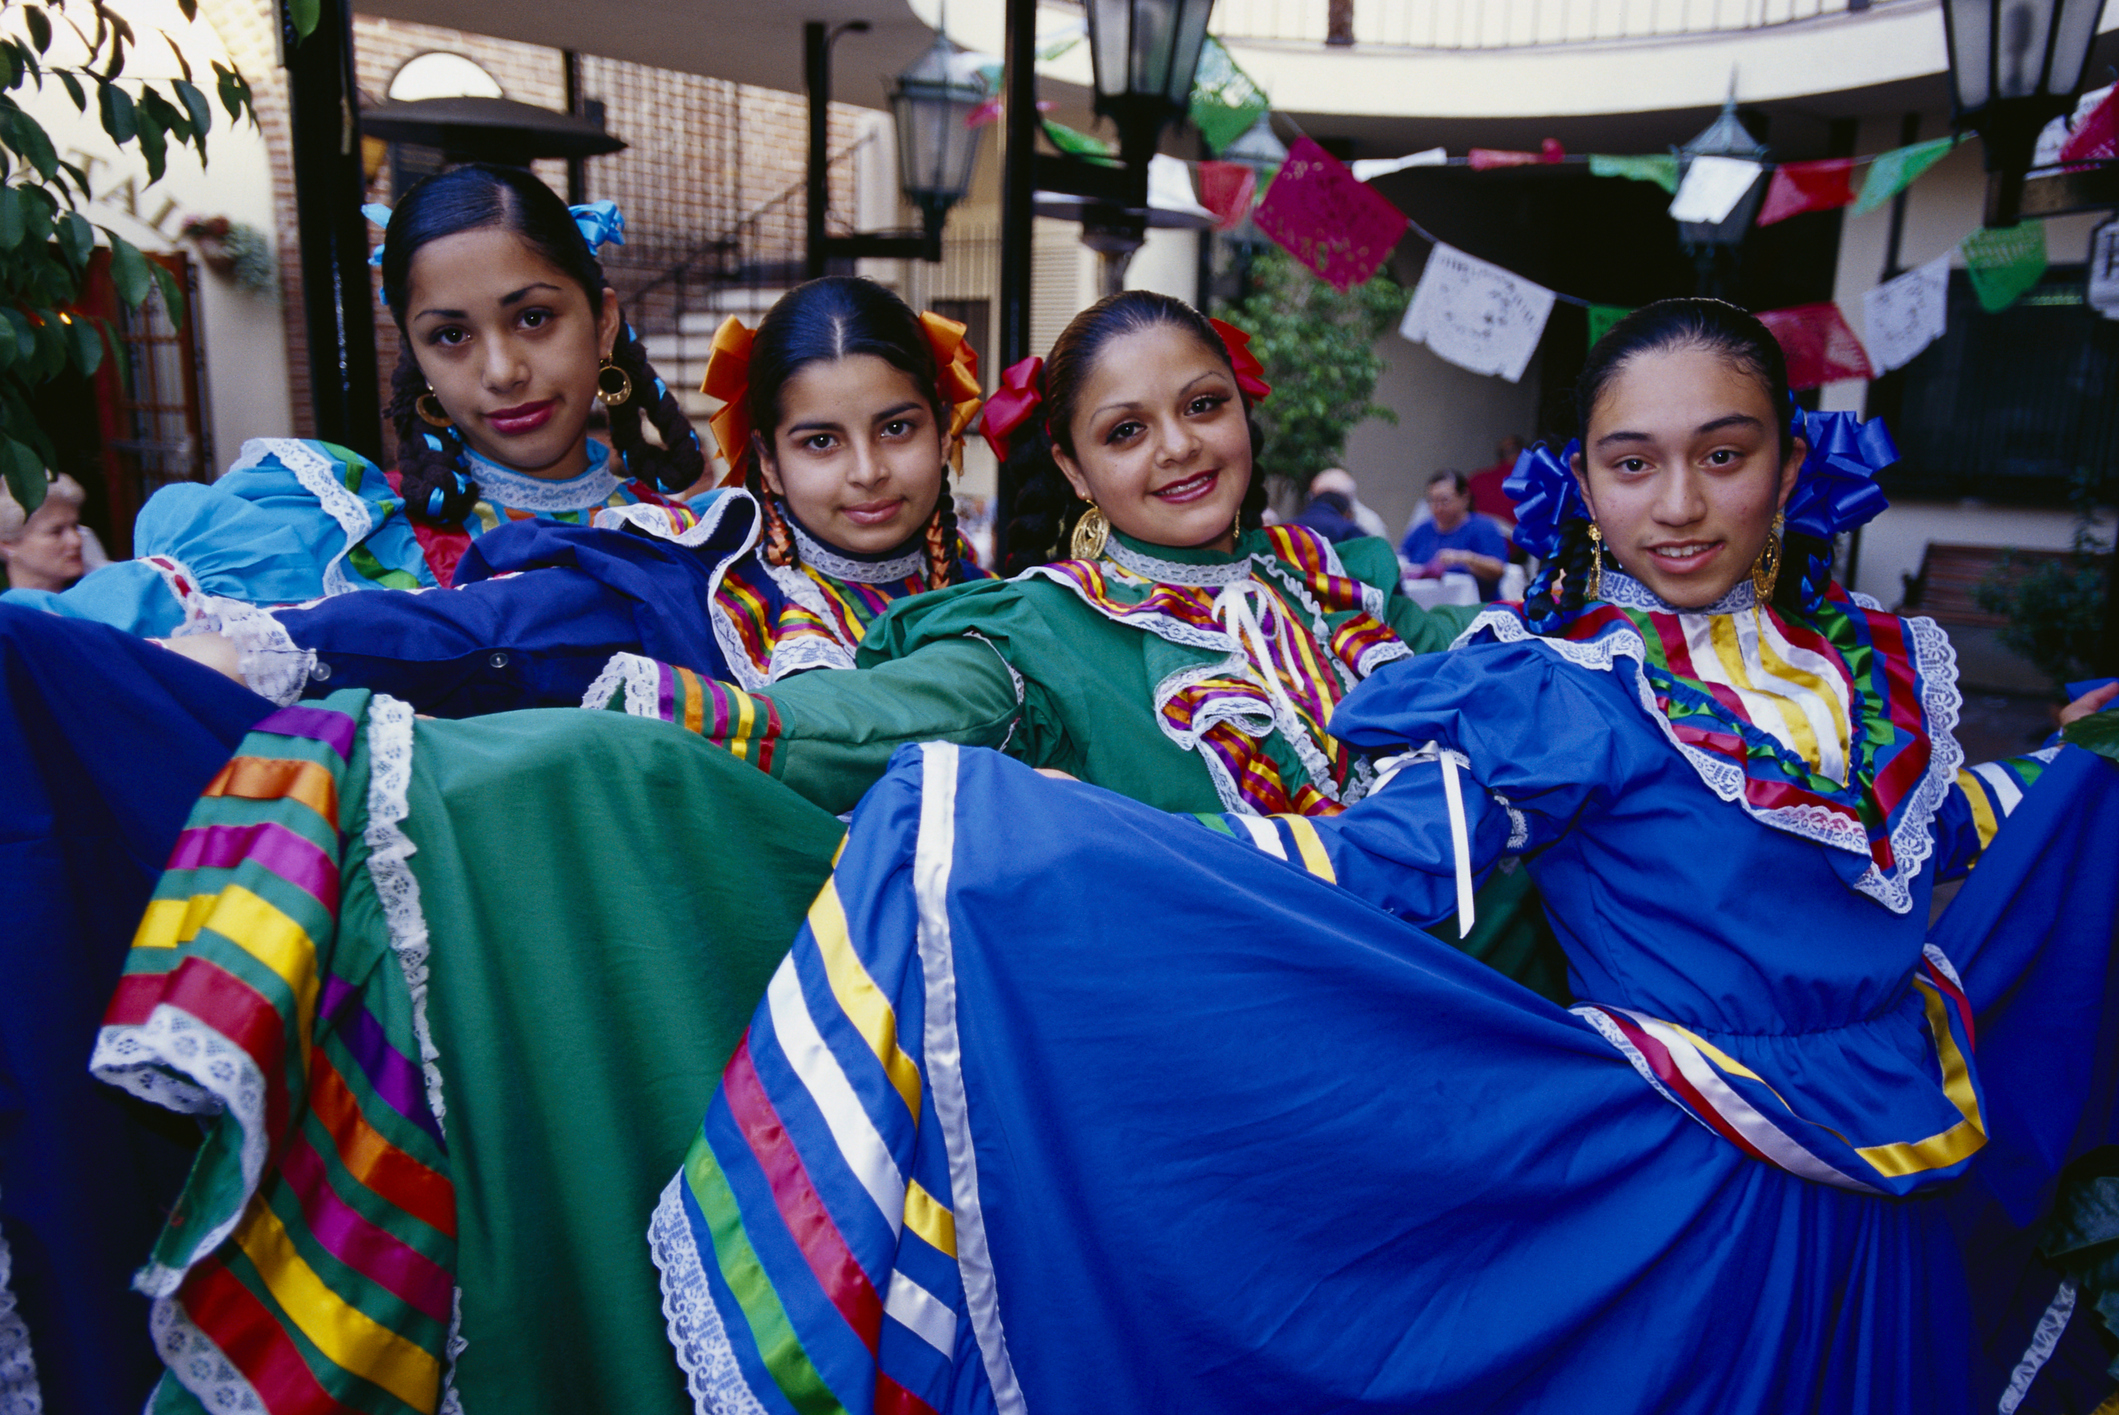 Is Cinco de Mayo a holiday in Mexico? Sorry to be a buzzkill, but these are the facts